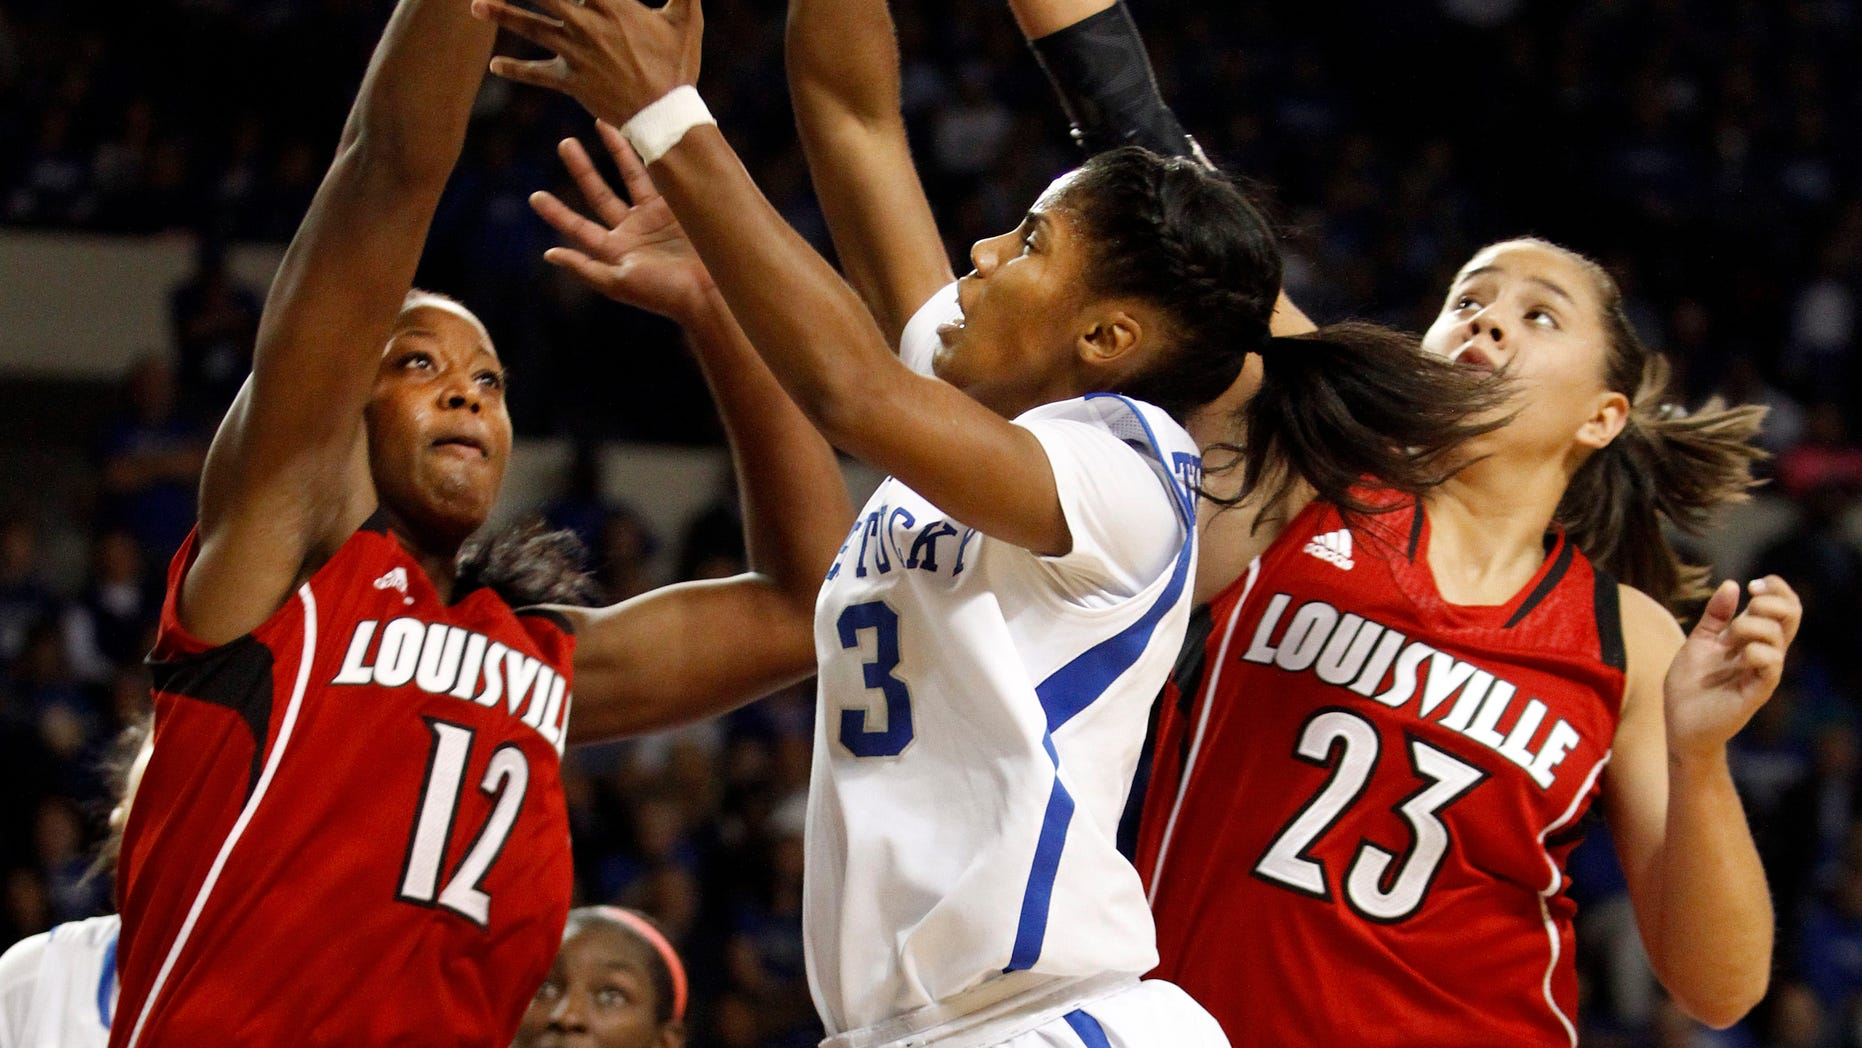 Kentucky's Janee Thompson (3) shoots between Louisville's Shawnta' Dyer (12) and Shoni Schimmel (23) during the first half of an NCAA college basketball game on Sunday, Dec. 1, 2013, in Lexington, Ky.  (AP Photo/James Crisp)